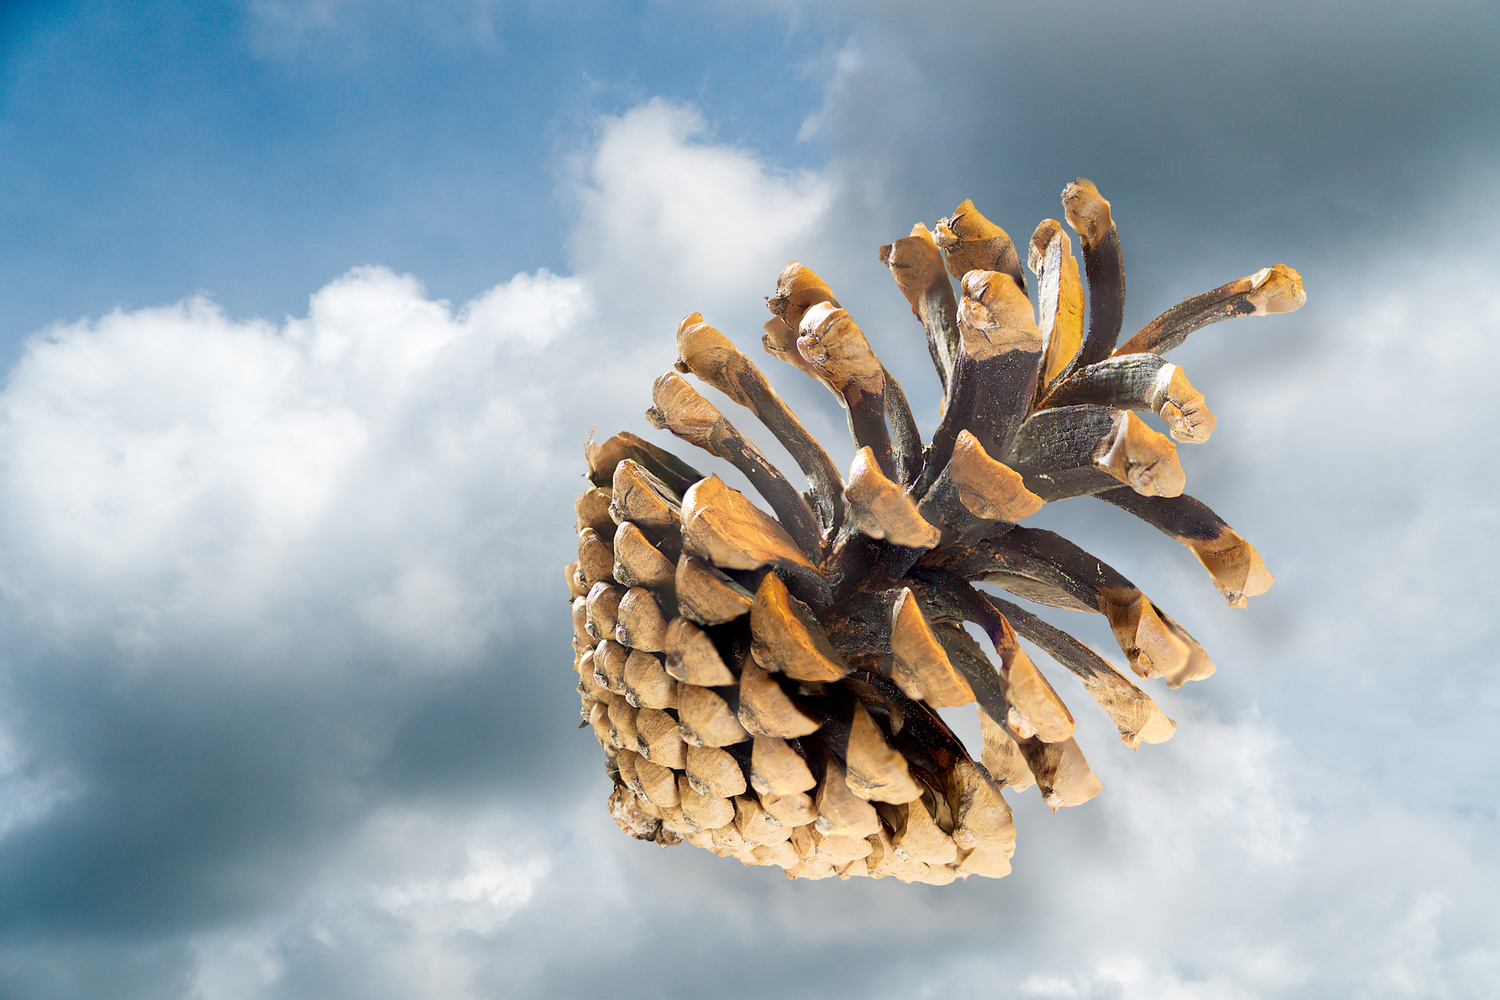 Composite, Floating Pine Cone by Charles Haacker